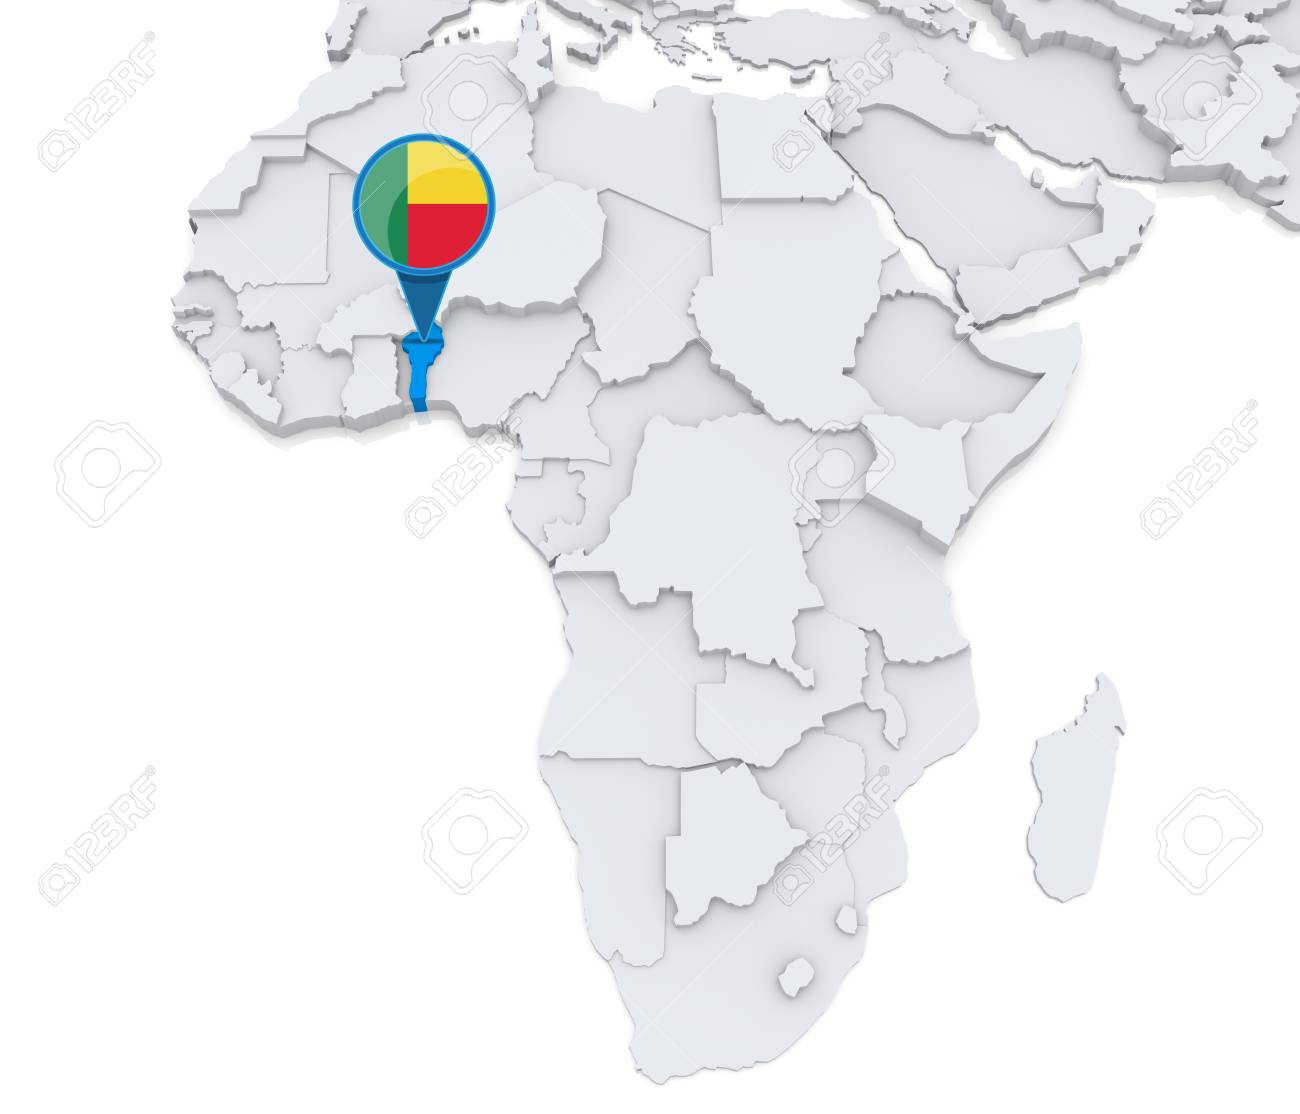 Benin Map In Africa.Highlighted Benin On Map Of Africa With National Flag